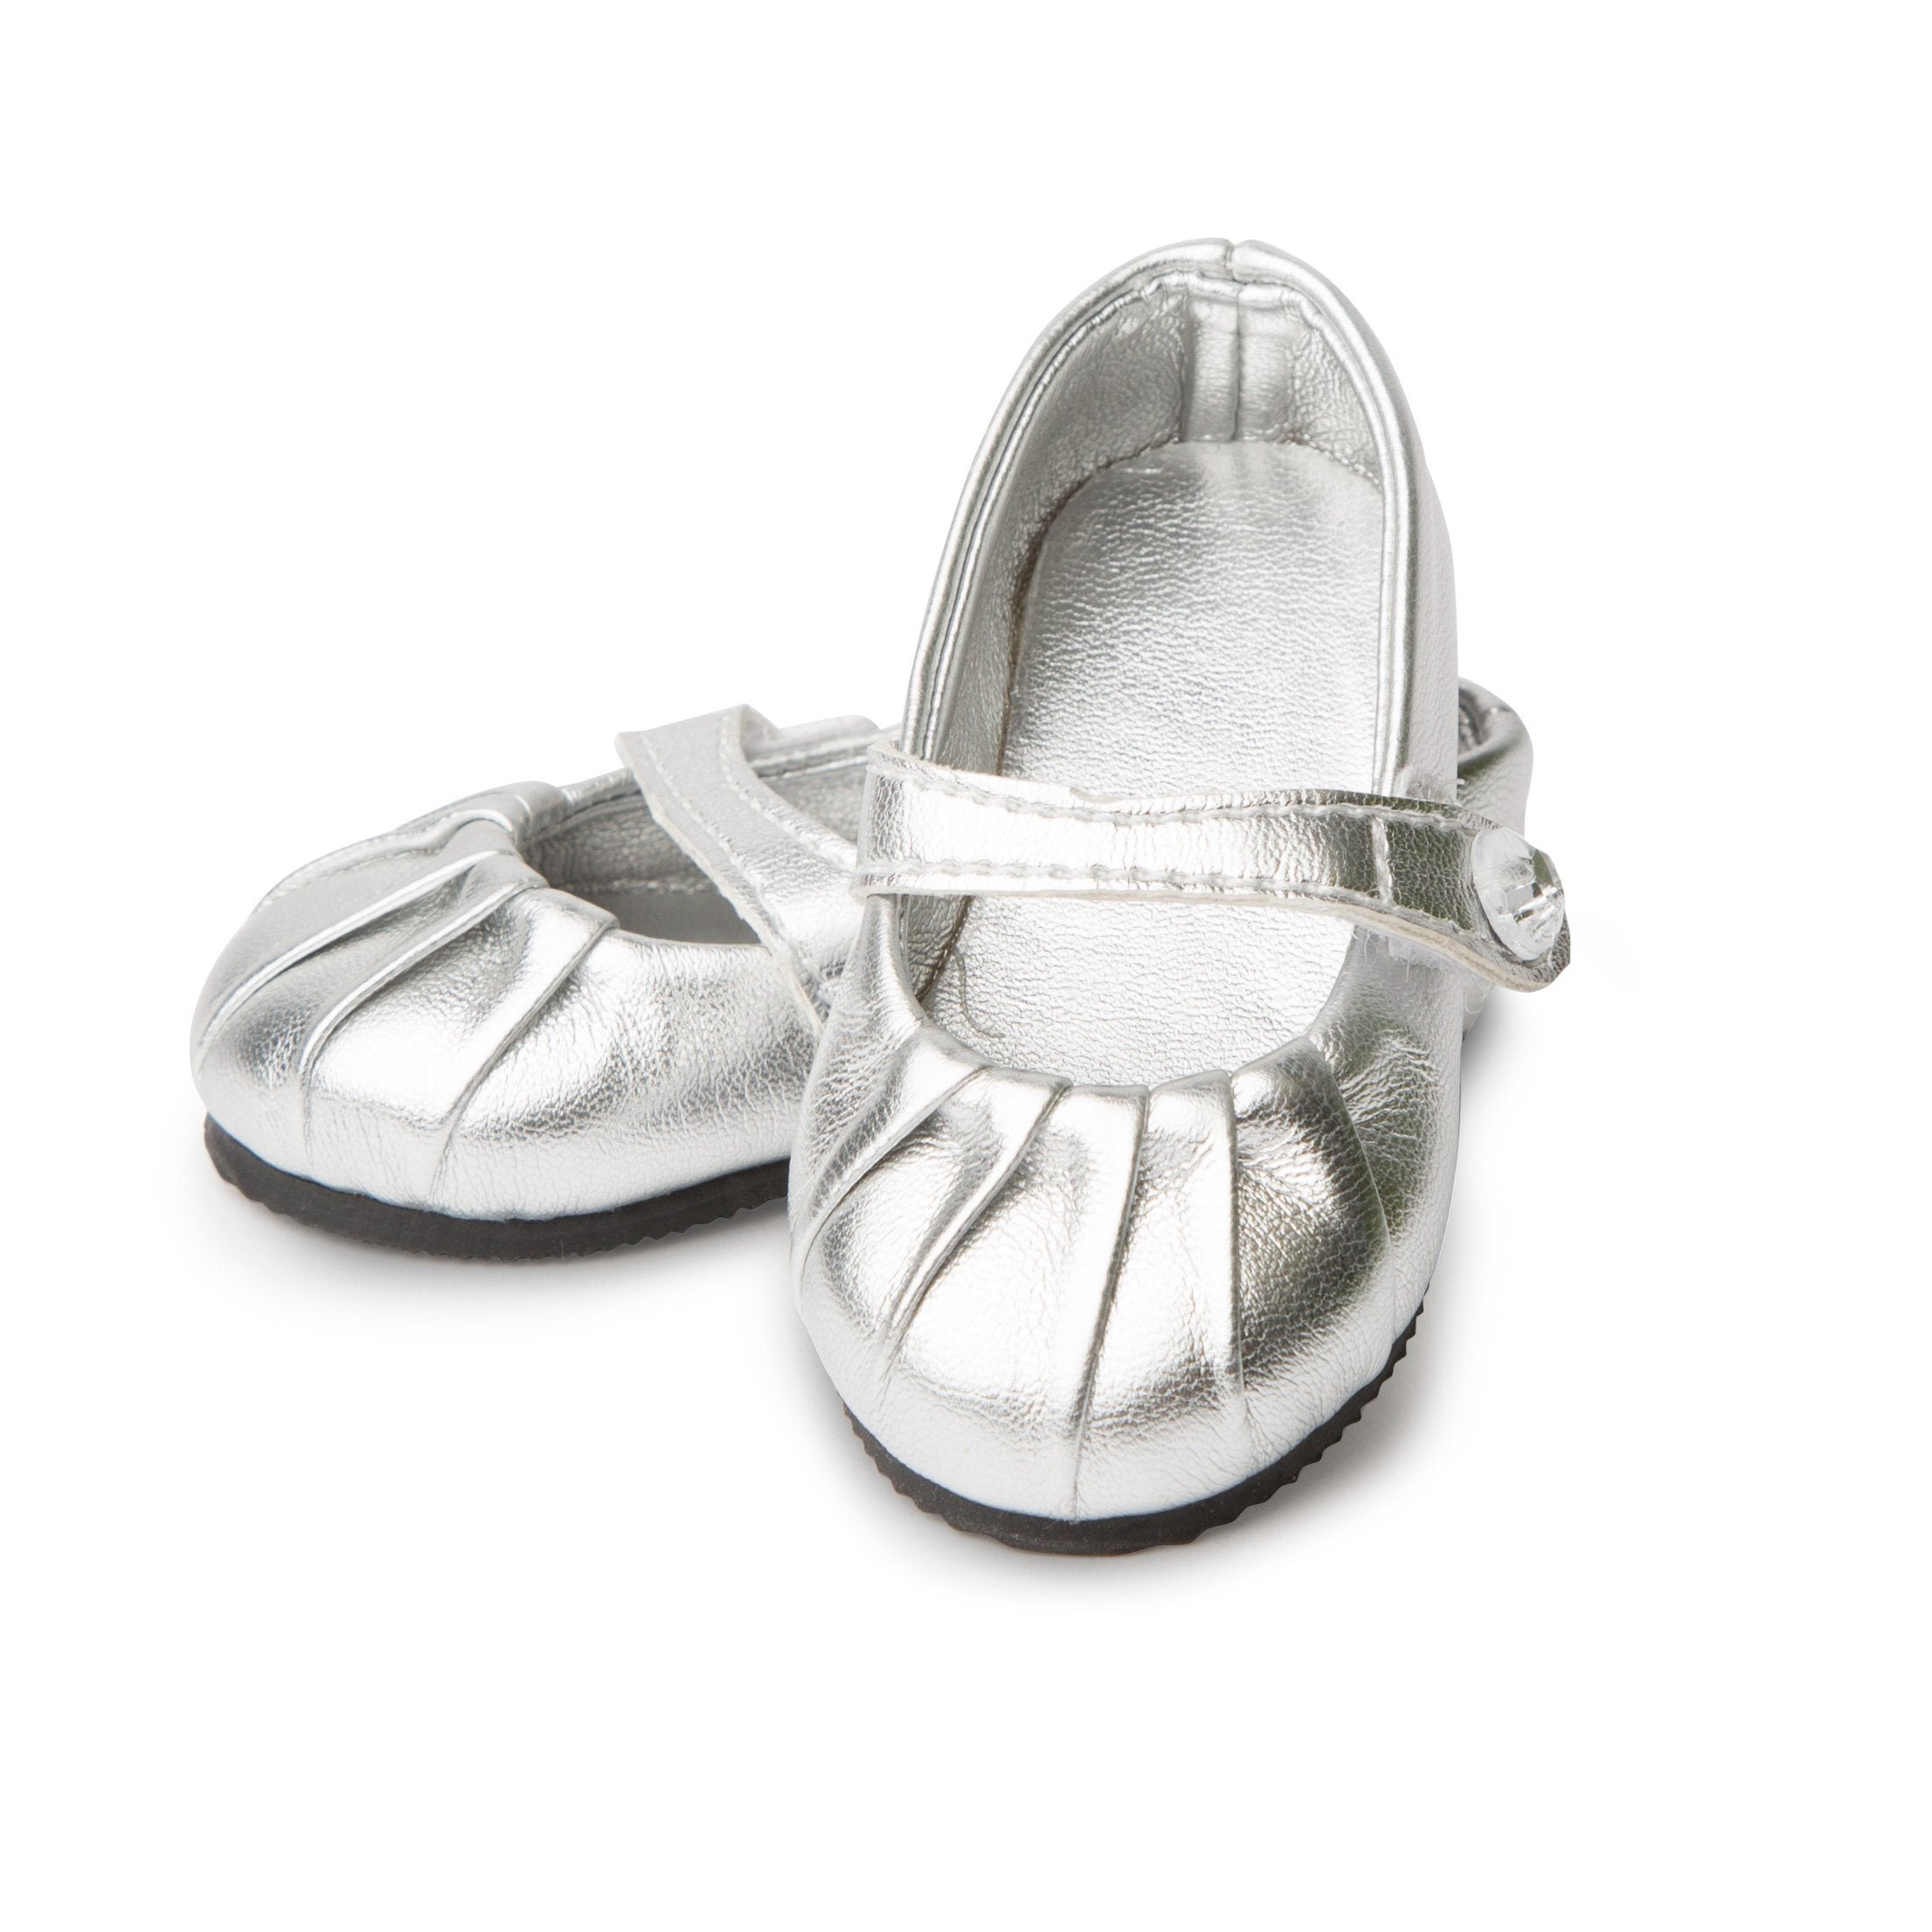 Silver Shine Shoes KM77 All Dolls Footwear